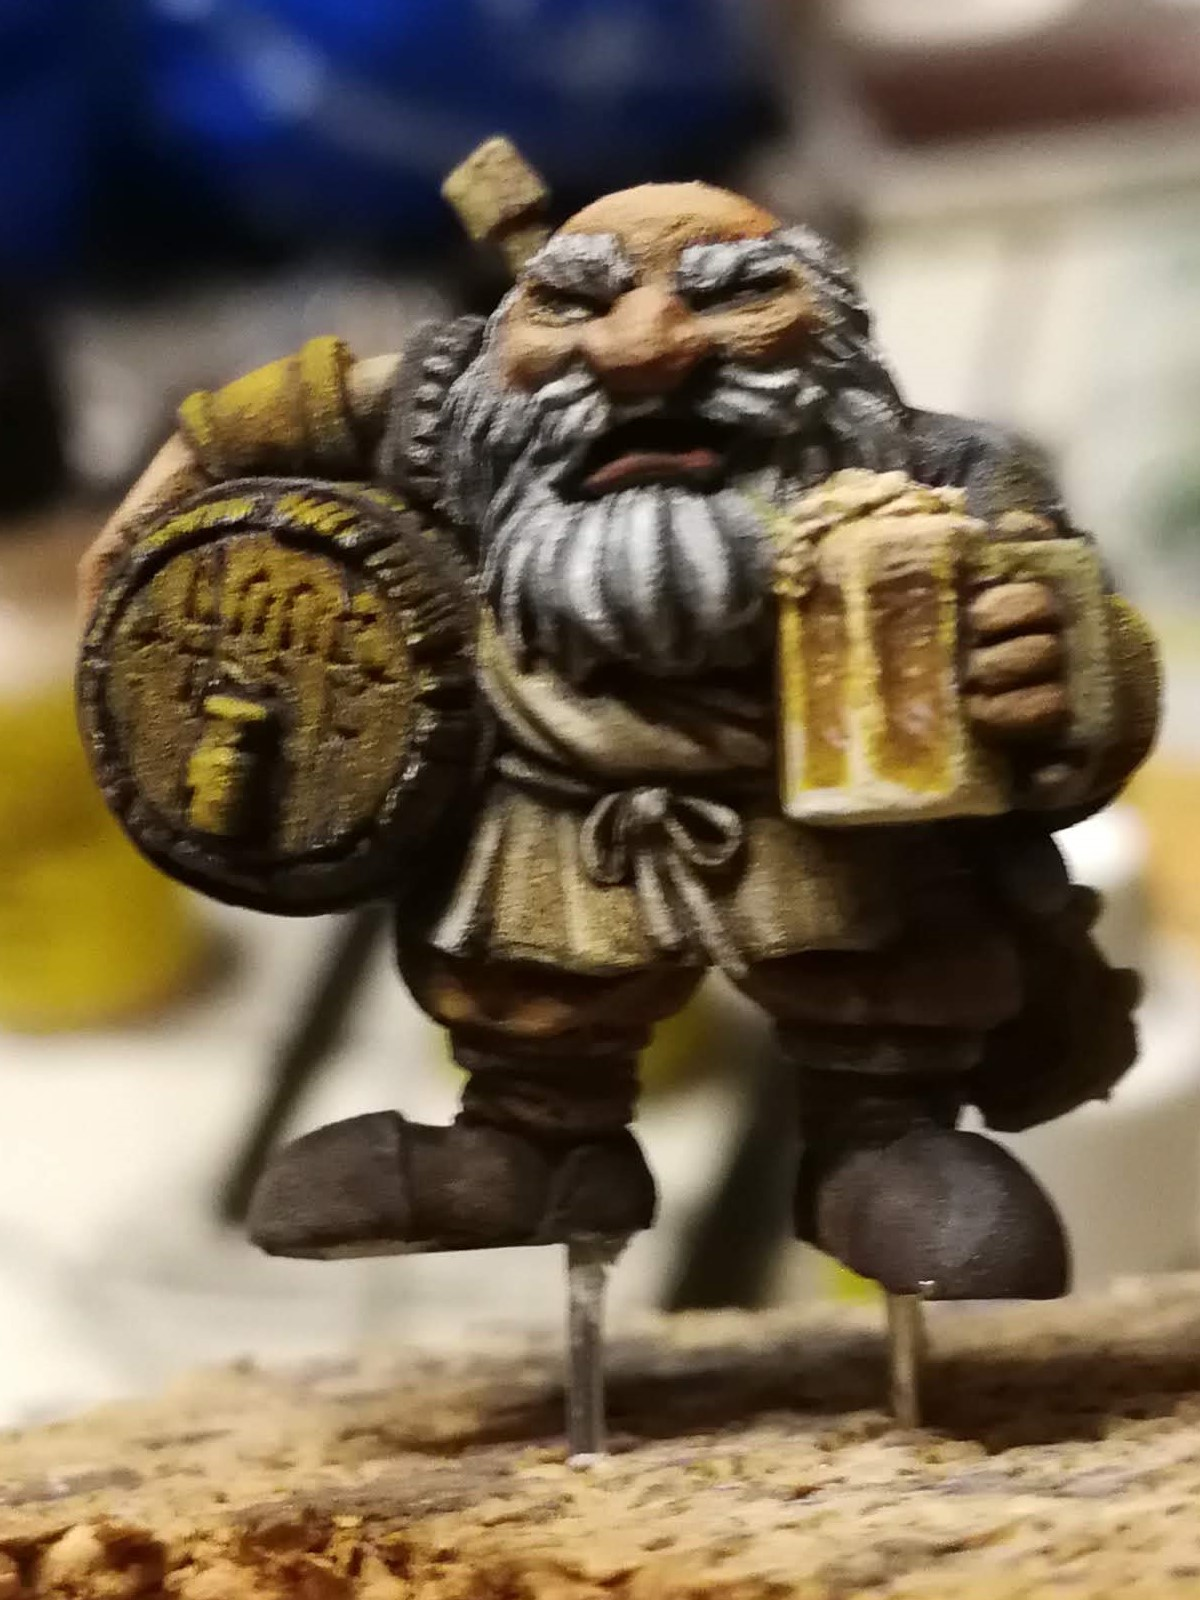 Has mature dwarven stout